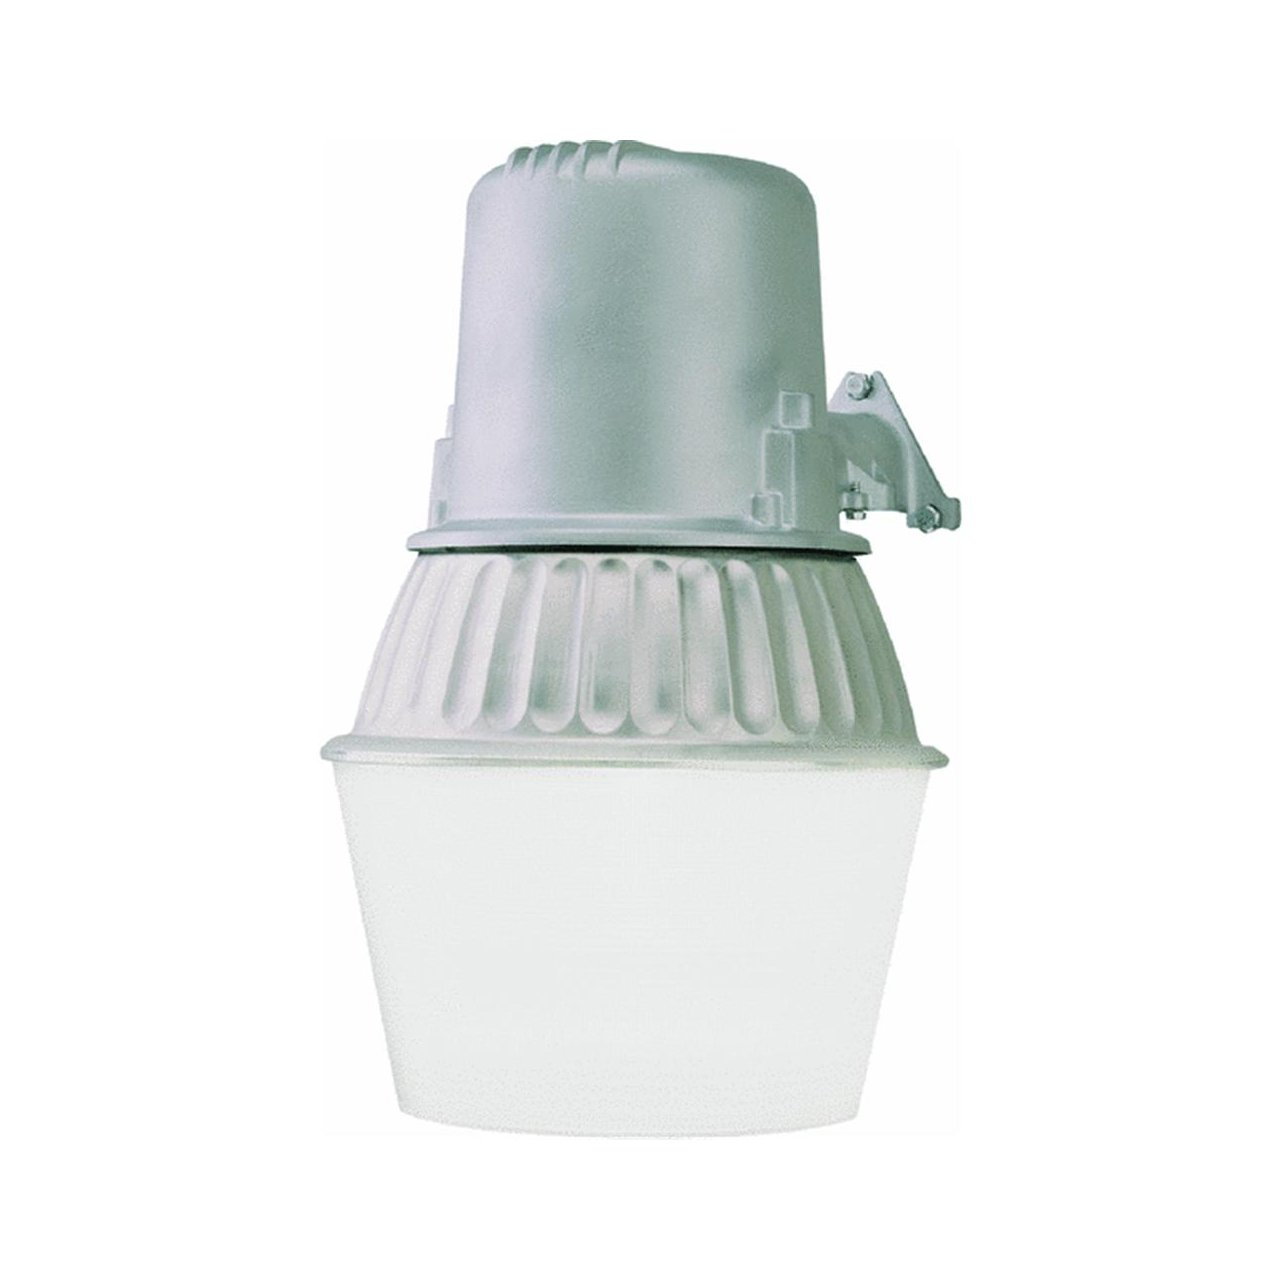 All pro al65fl 65w fluorescent safety and security dusk to dawn area all pro al65fl 65w fluorescent safety and security dusk to dawn area light commercial street and area lighting amazon aloadofball Choice Image